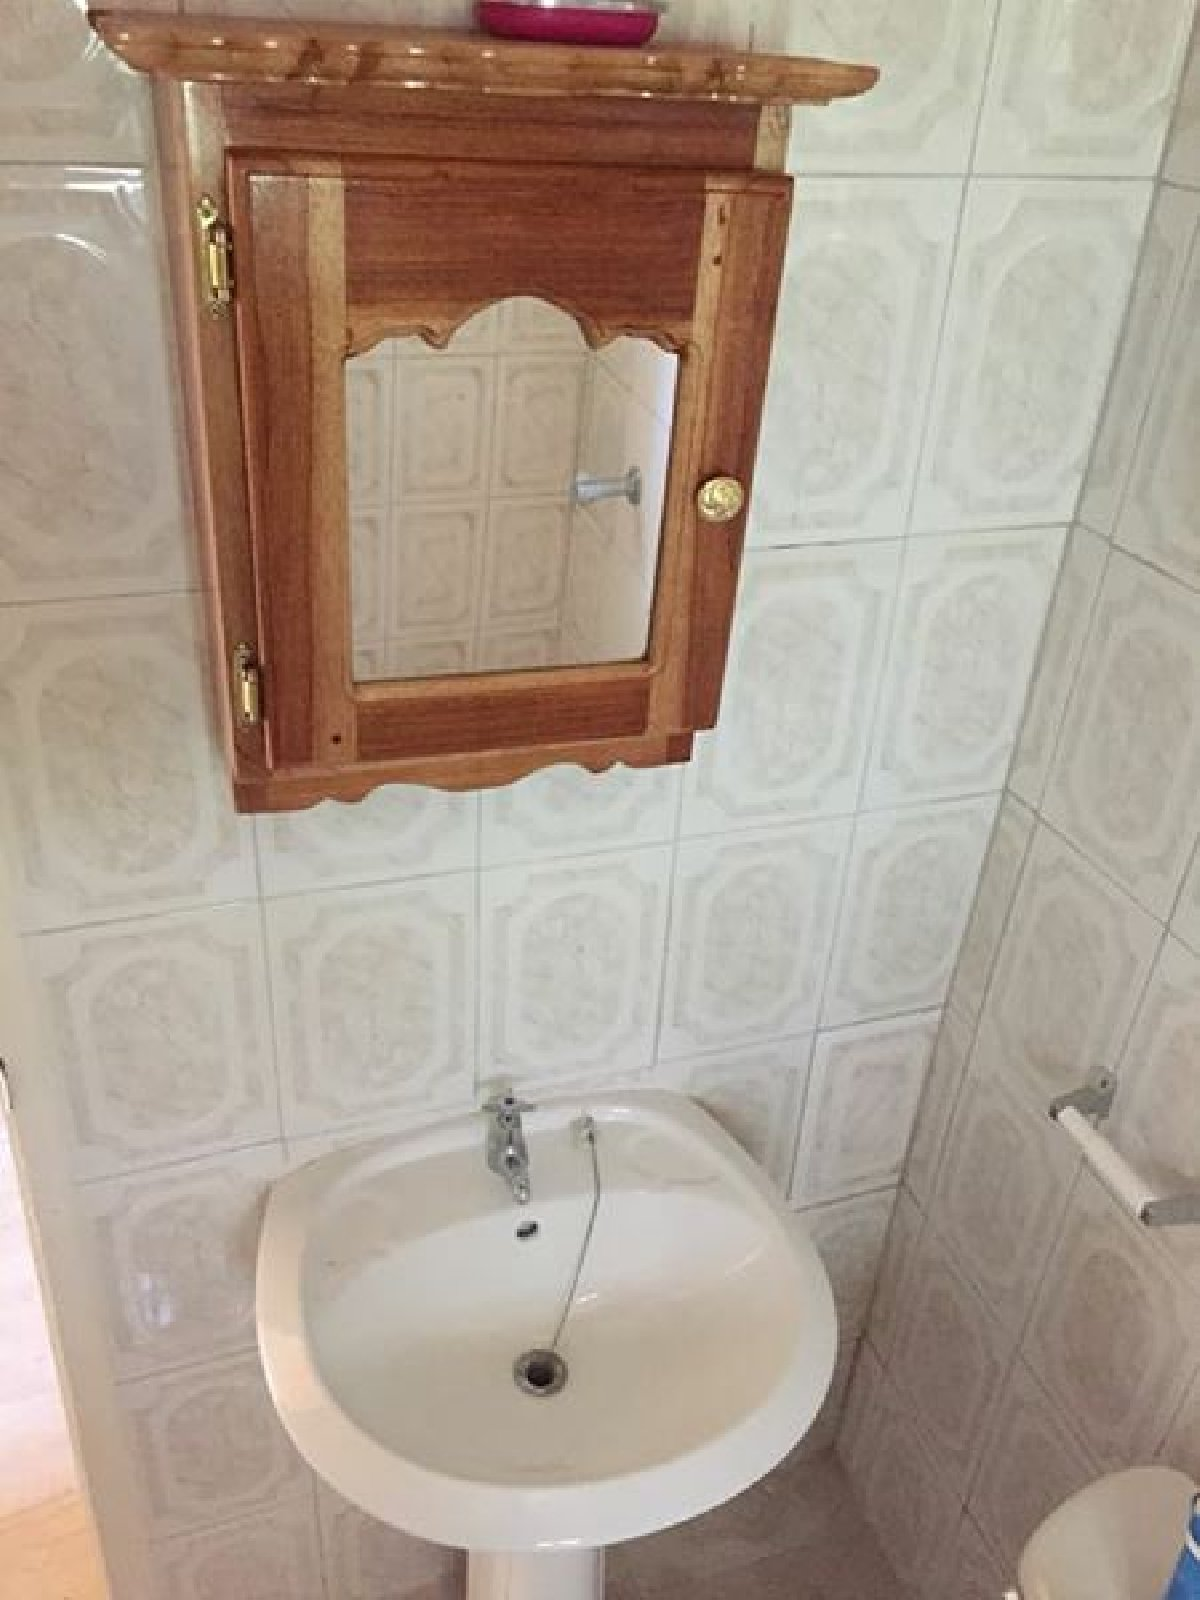 2 bedroom 1 bathroom house for rent in linstead st for Rent a bathroom